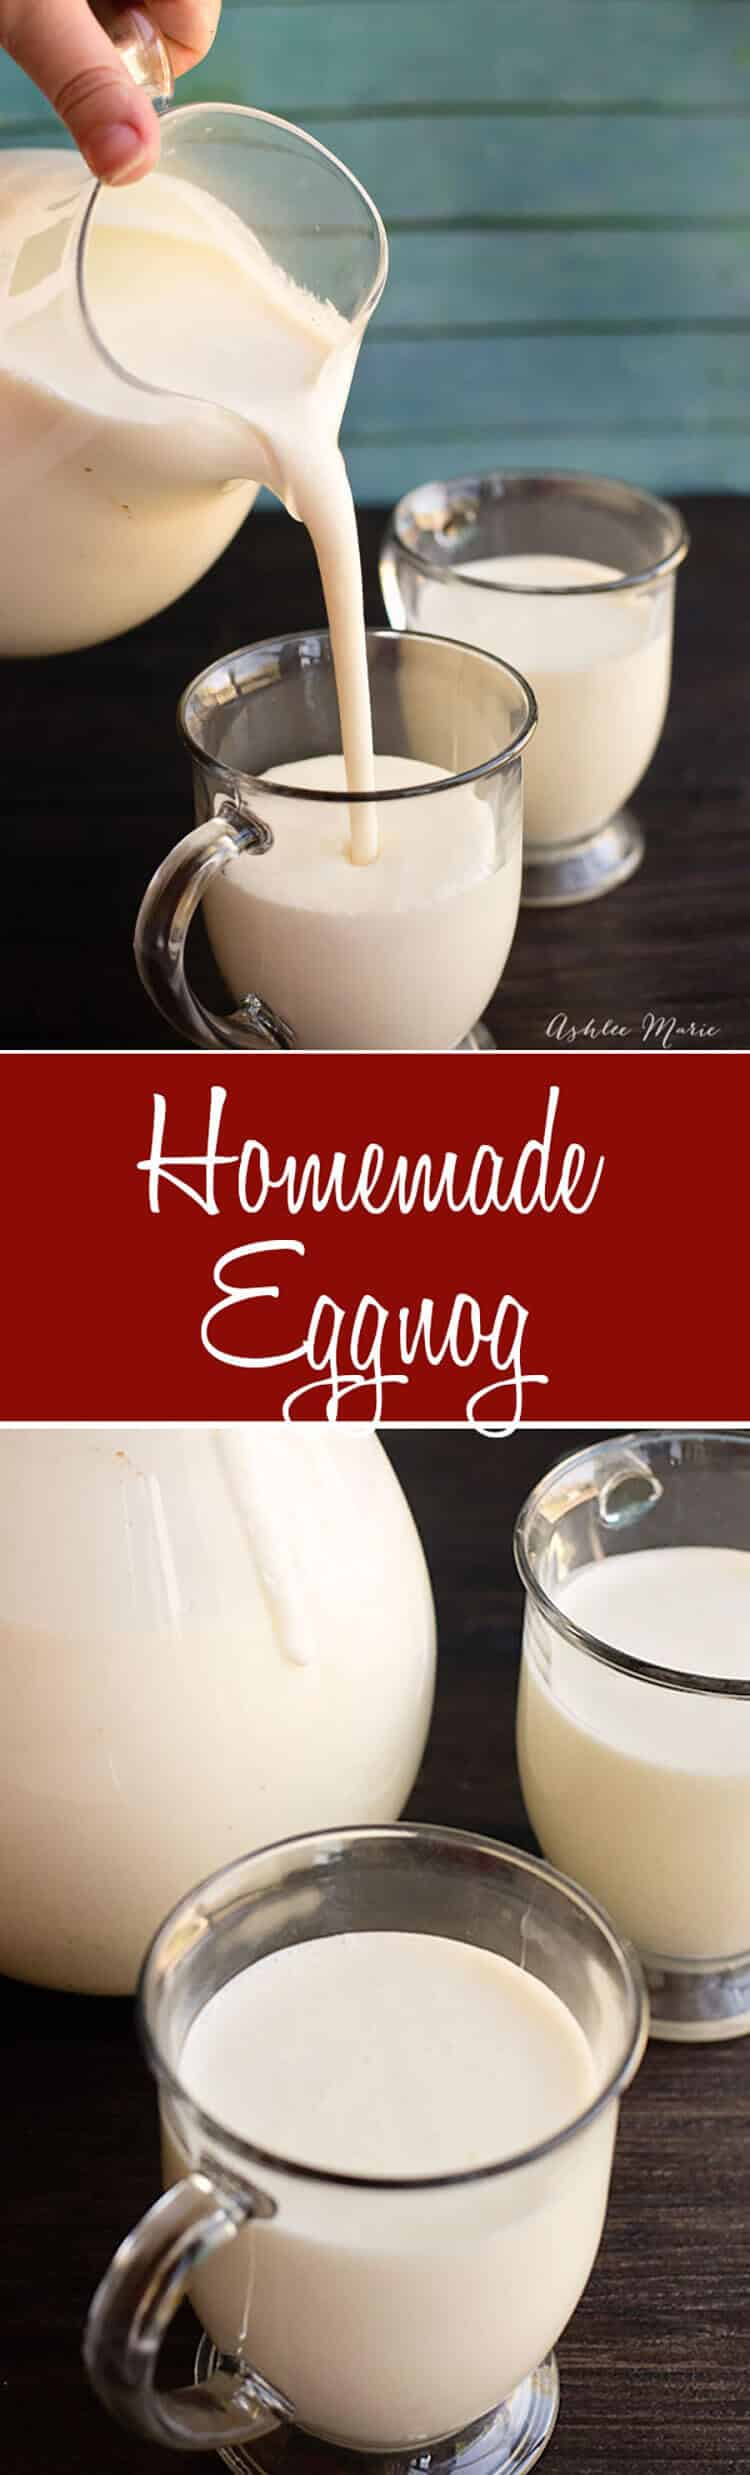 how to make homemade eggnog youtube